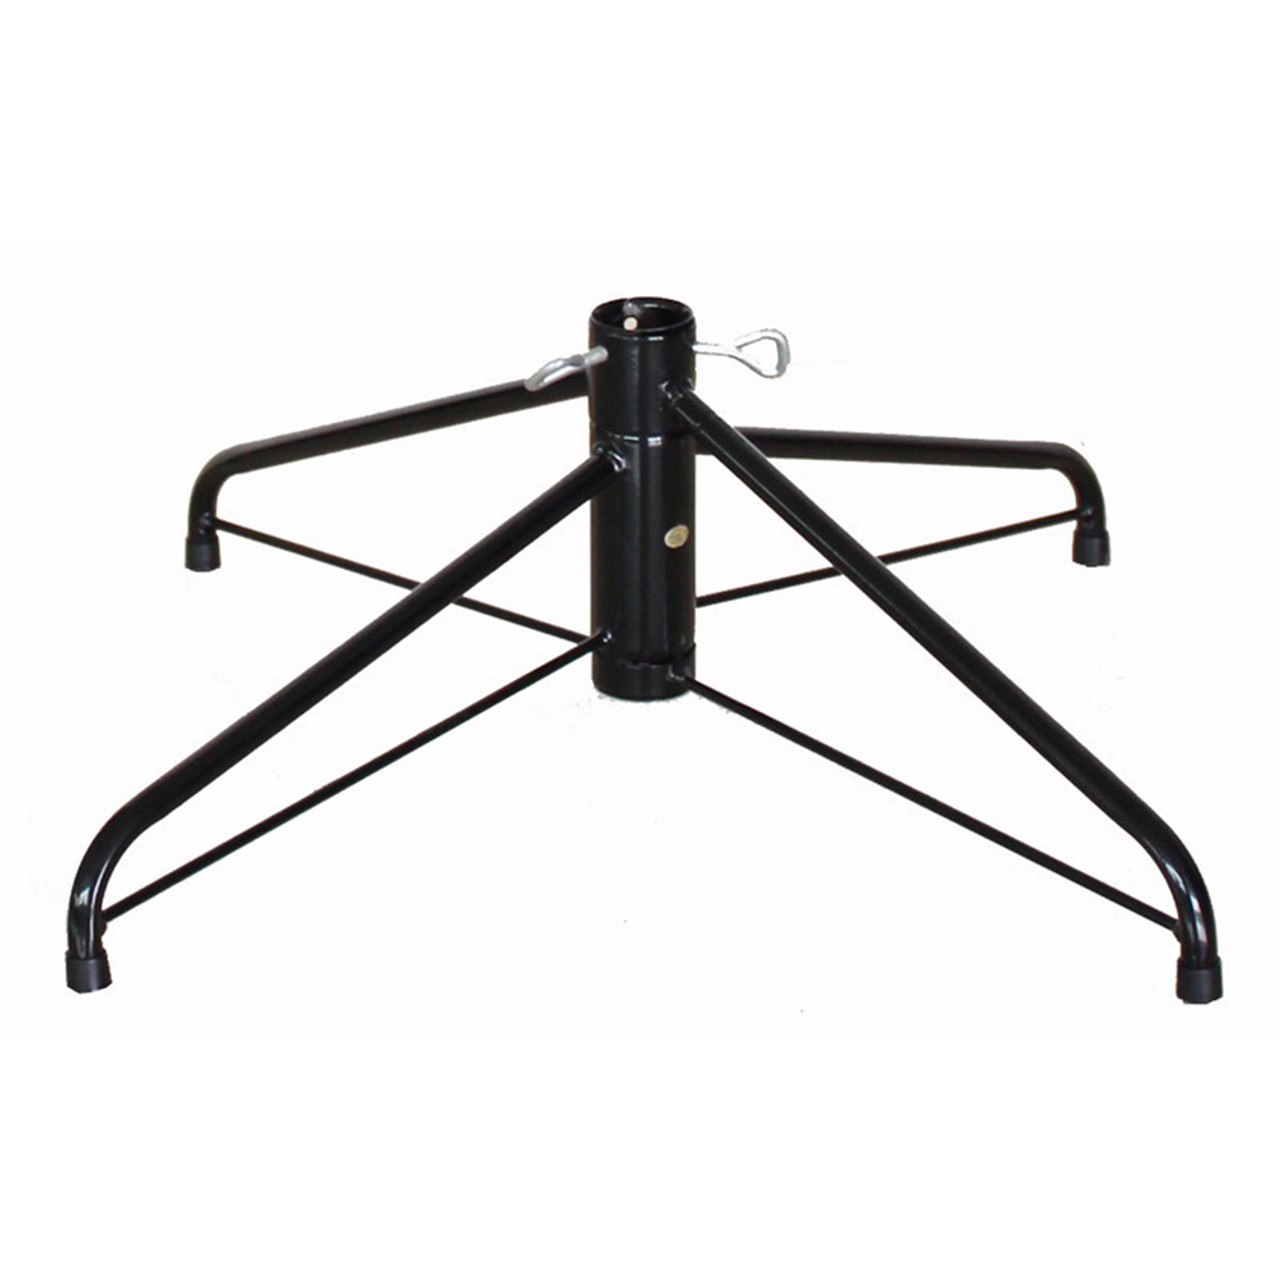 22 Black Metal Folding Christmas Tree Stand For Artificial Trees Up To 6 5 8 Tall Christmas Central